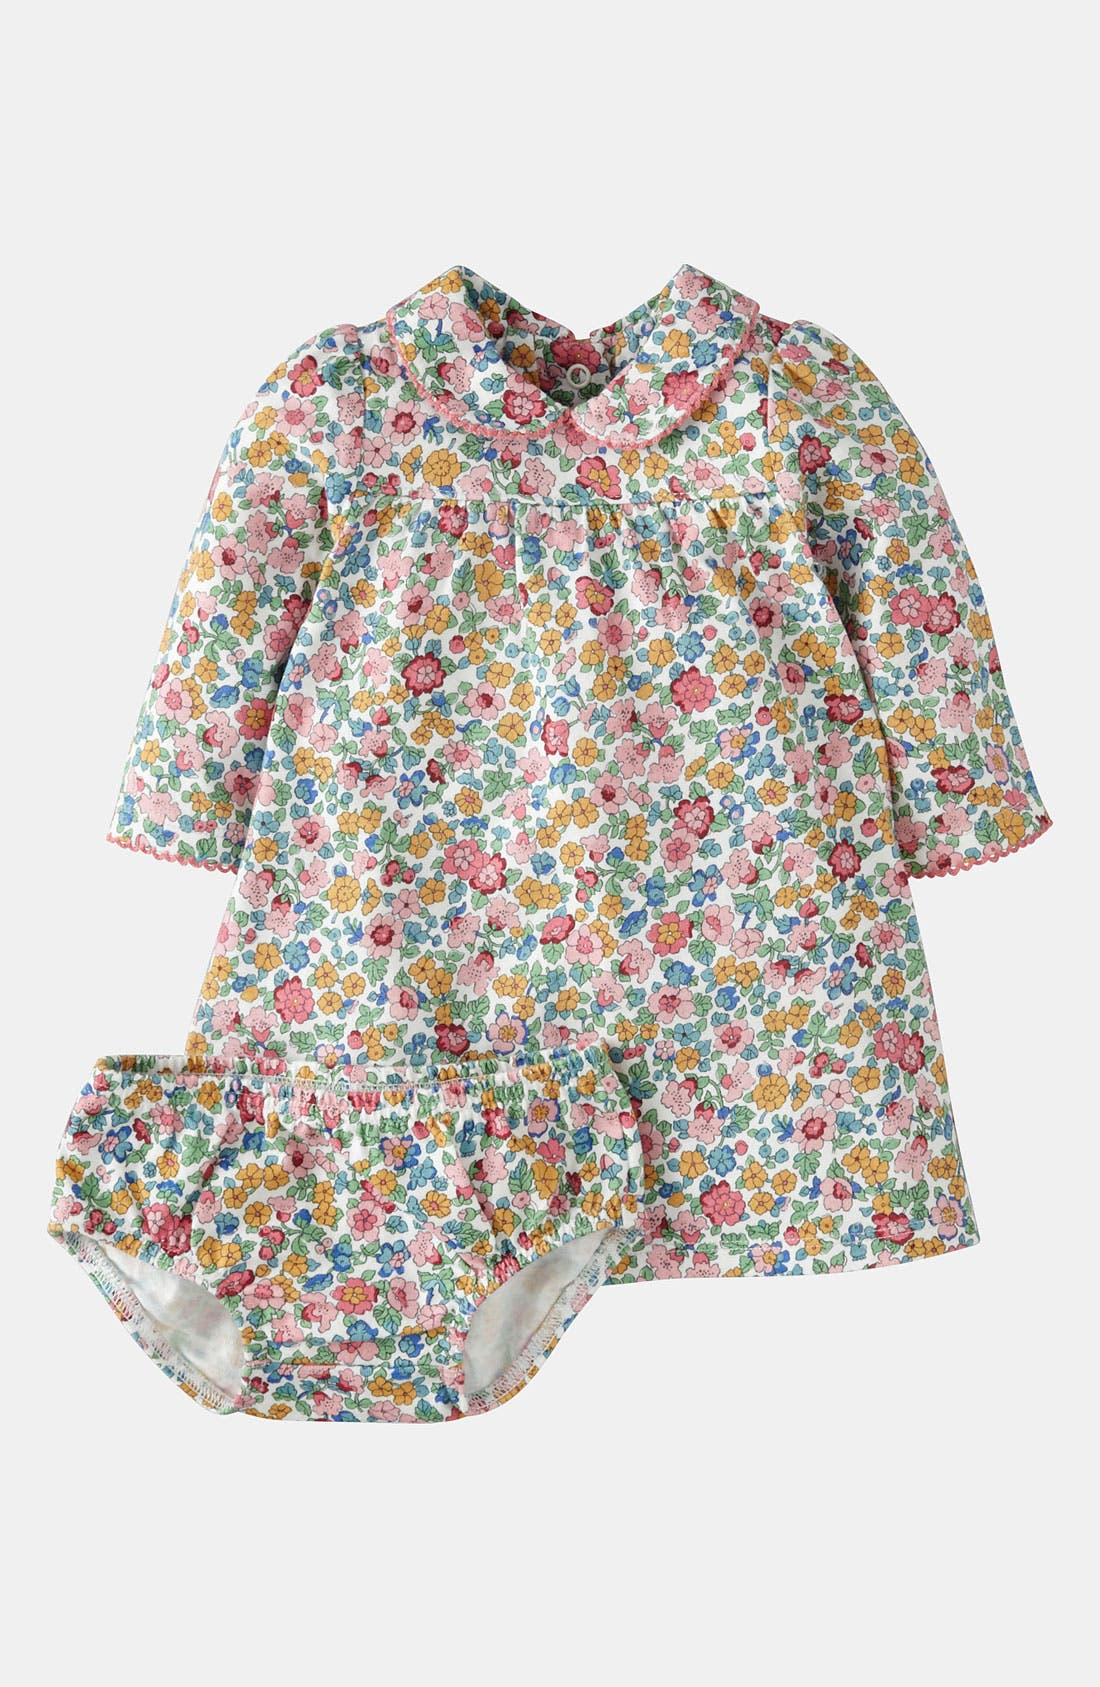 Main Image - Mini Boden 'Pretty' Jersey Dress & Bloomers (Baby)